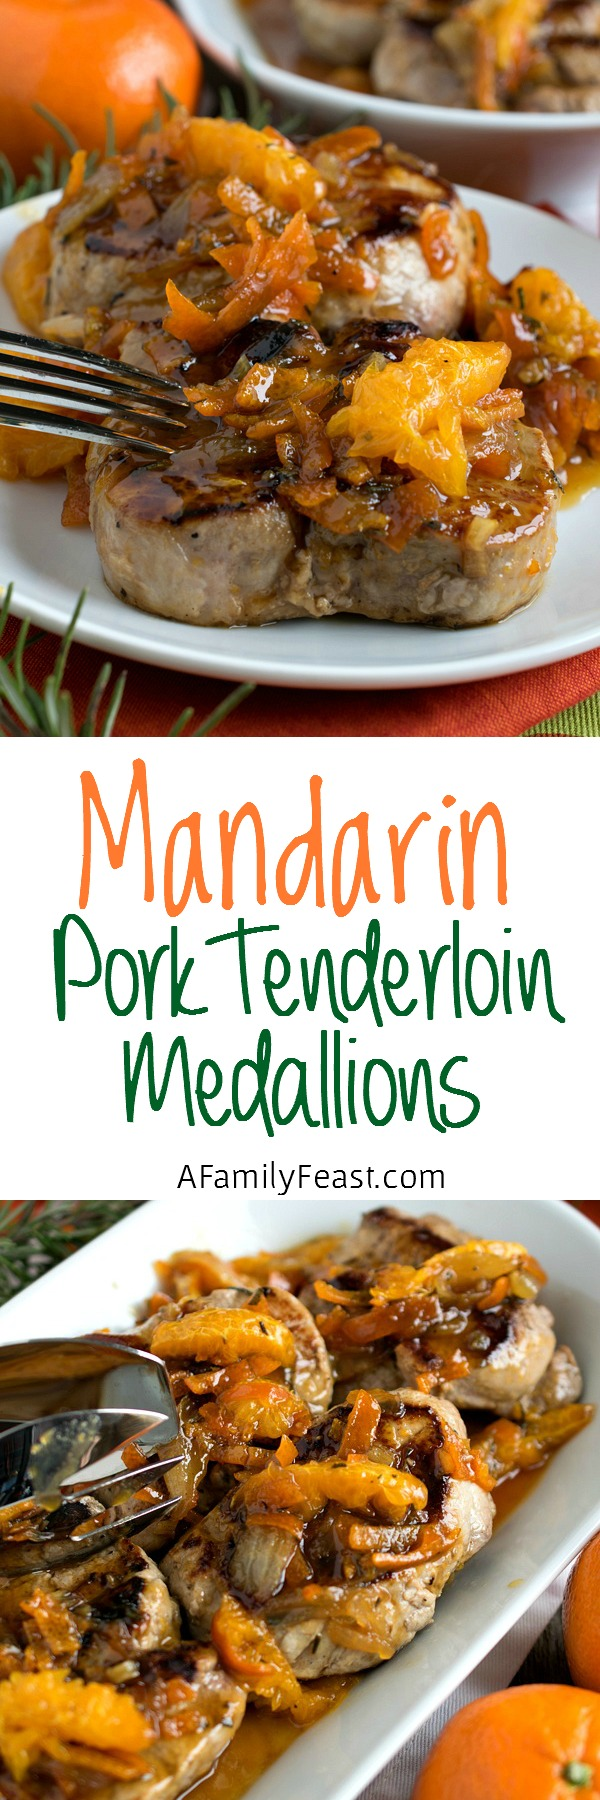 Mandarin Pork Tenderloin Medallions - The perfect sweet and savory pairing of pork with a Mandarin orange, Dijon, rosemary glaze. Only 30 minutes to make this elegant meal!